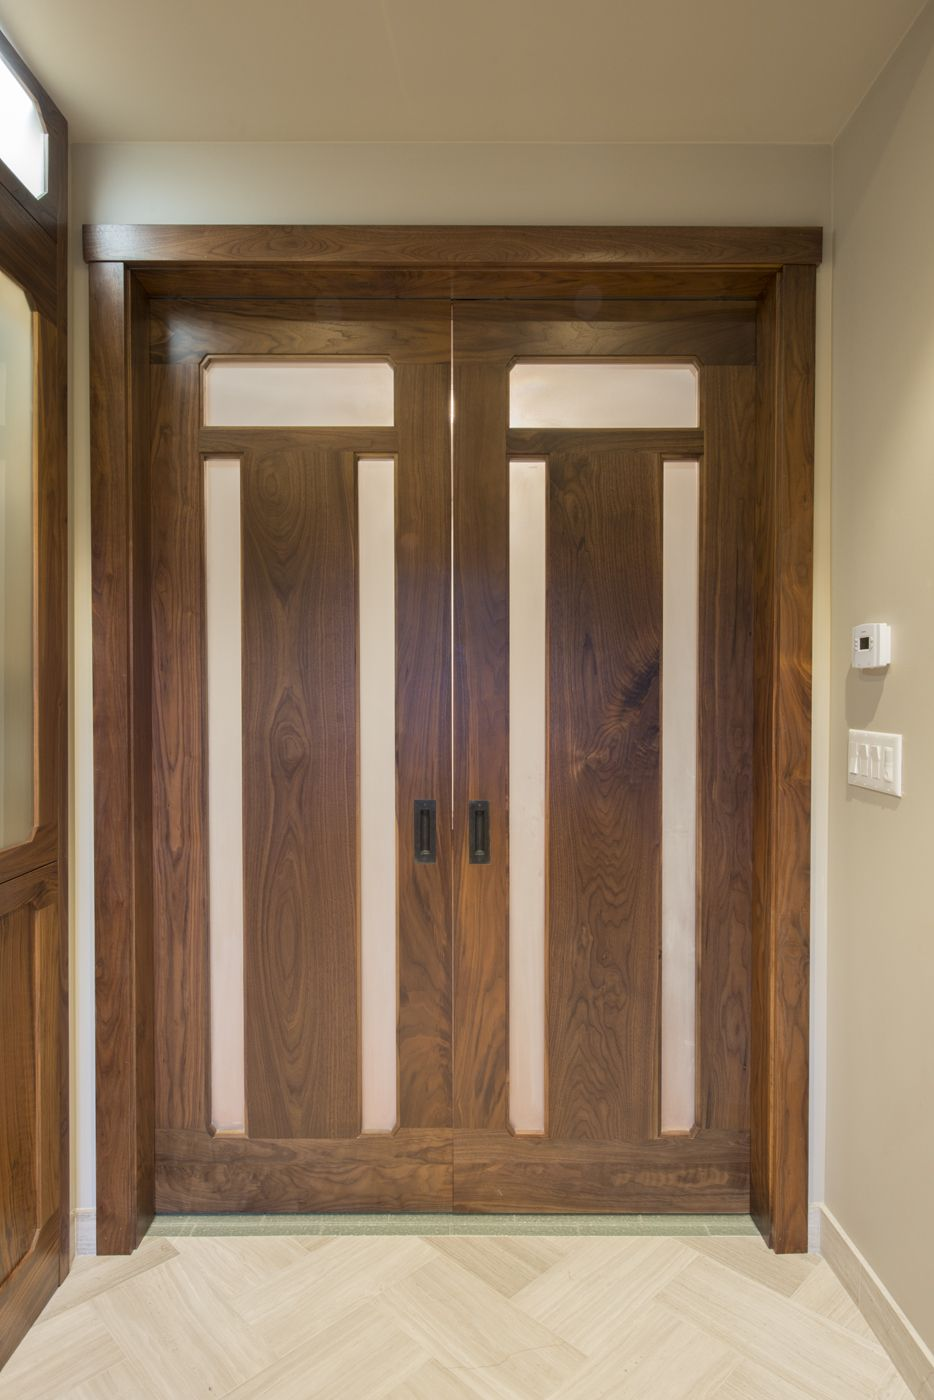 Custom Walnut And Sand Blasted Privacy Glass Pocket Doors Hafele Door Hardware Matching Lighted Linen Closet To Left Bath